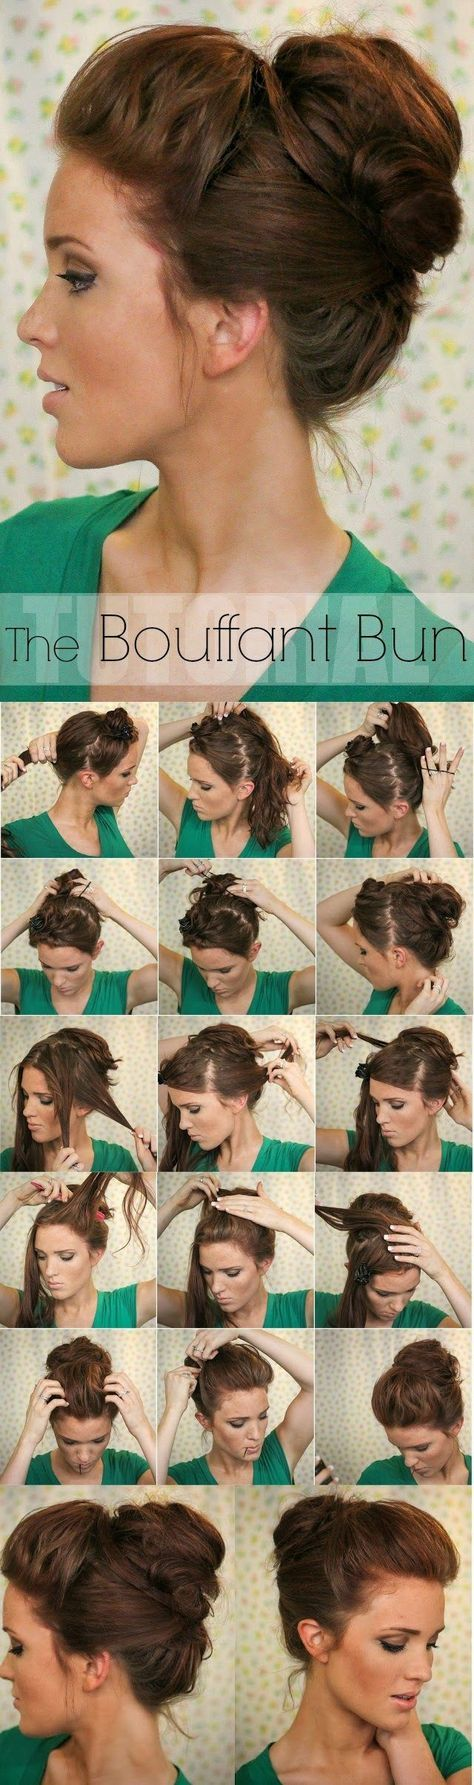 best clothes hair nails and jewwlery images on pinterest